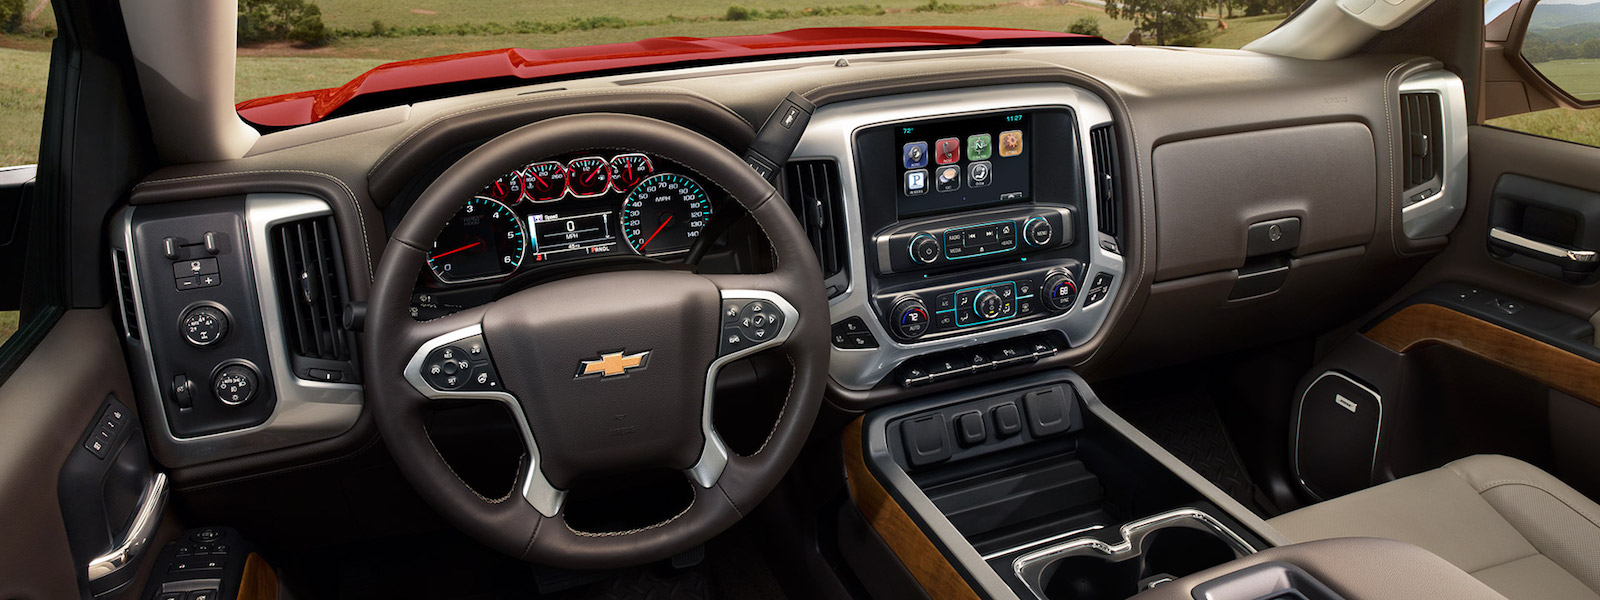 Chevy Silverado Interior